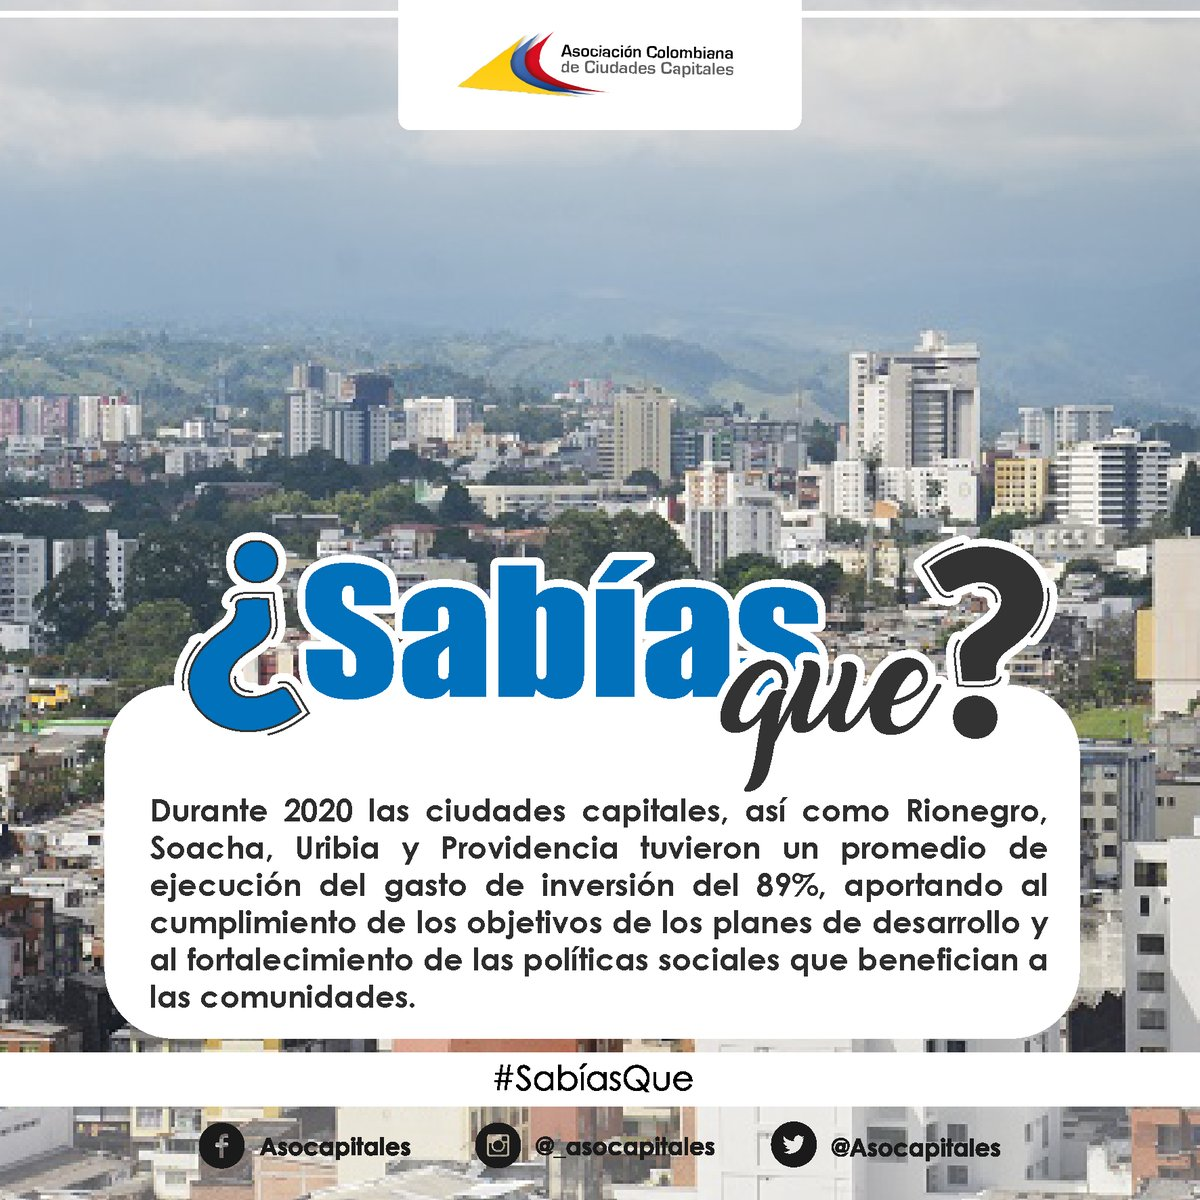 Asocapitales photo